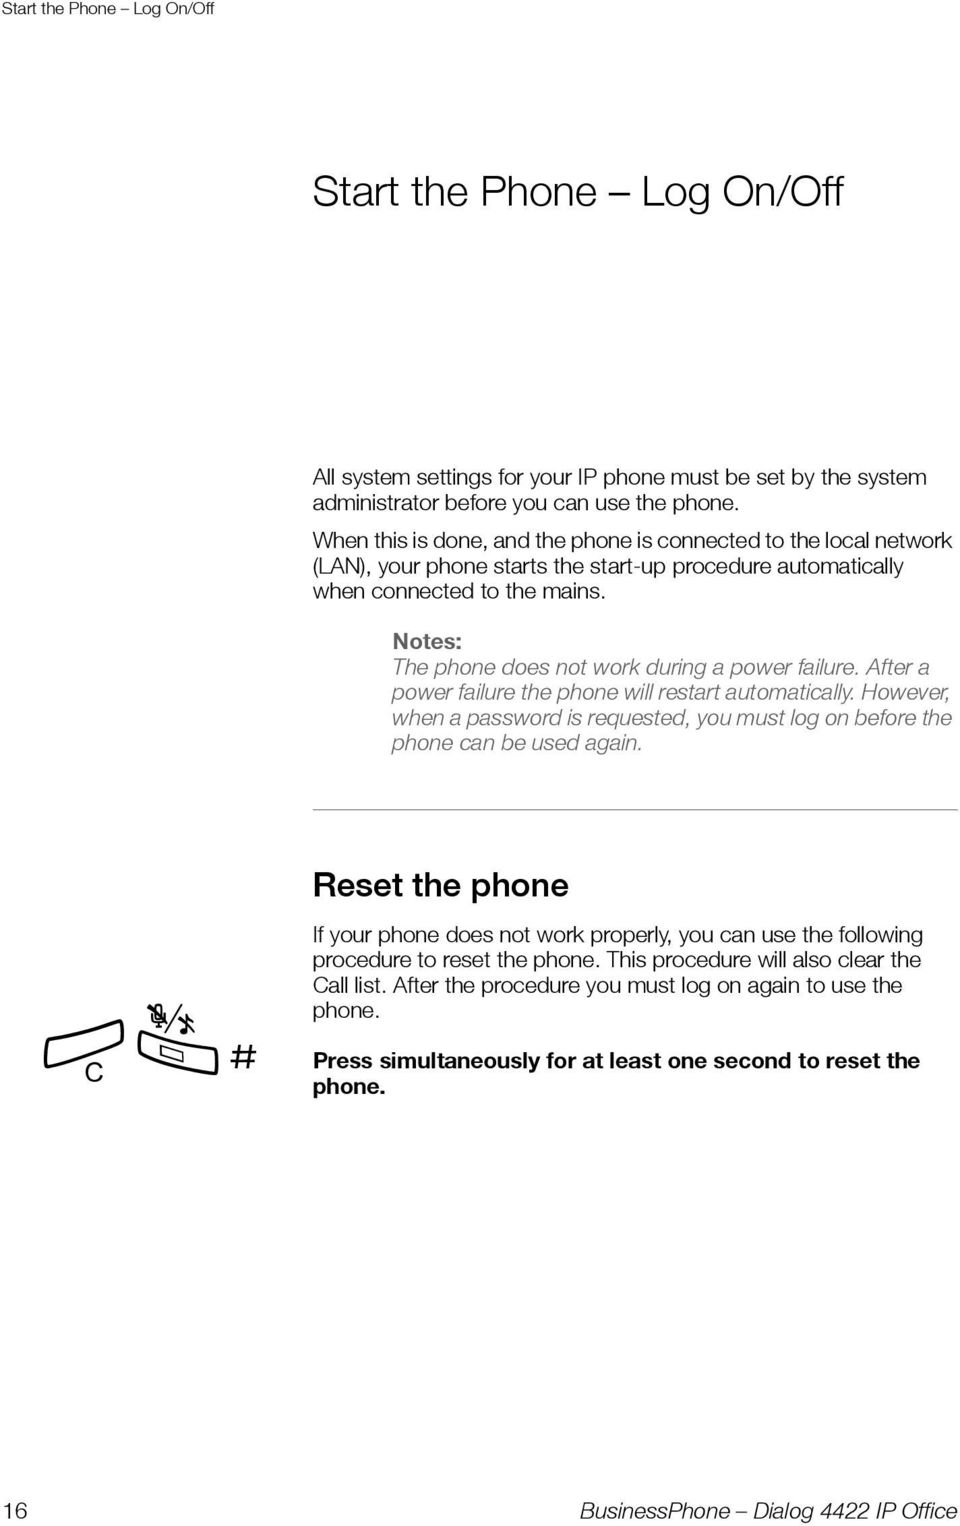 Notes: The phone does not work during a power failure. After a power failure the phone will restart automatically.